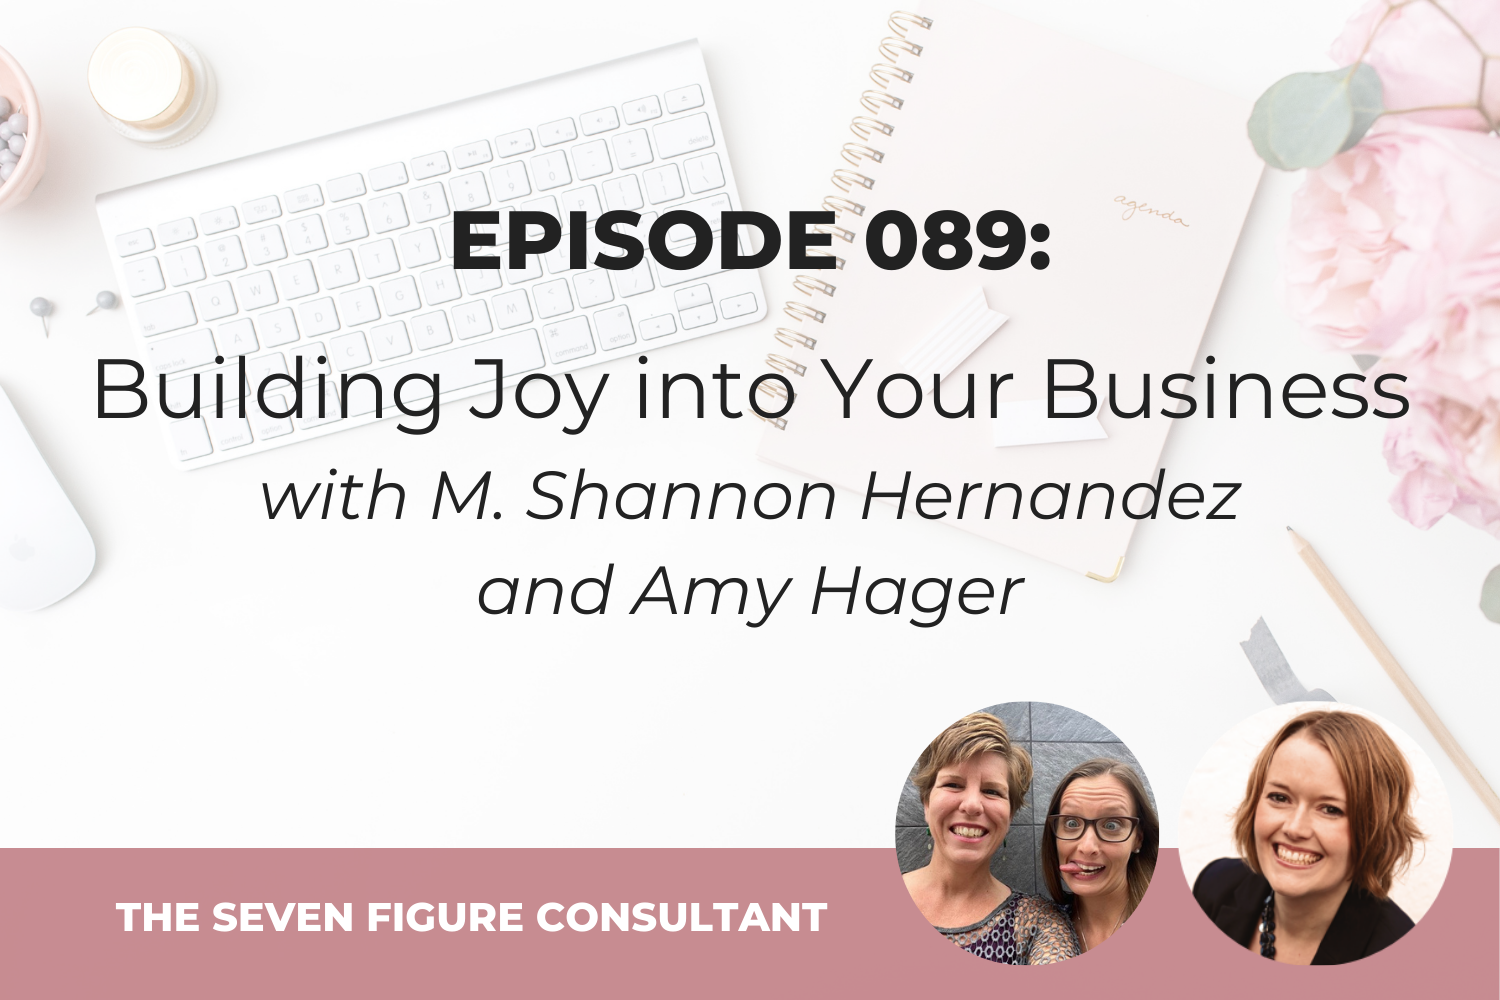 You are currently viewing Episode 089: Building Joy into Your Business with M. Shannon Hernandez and Amy Hager